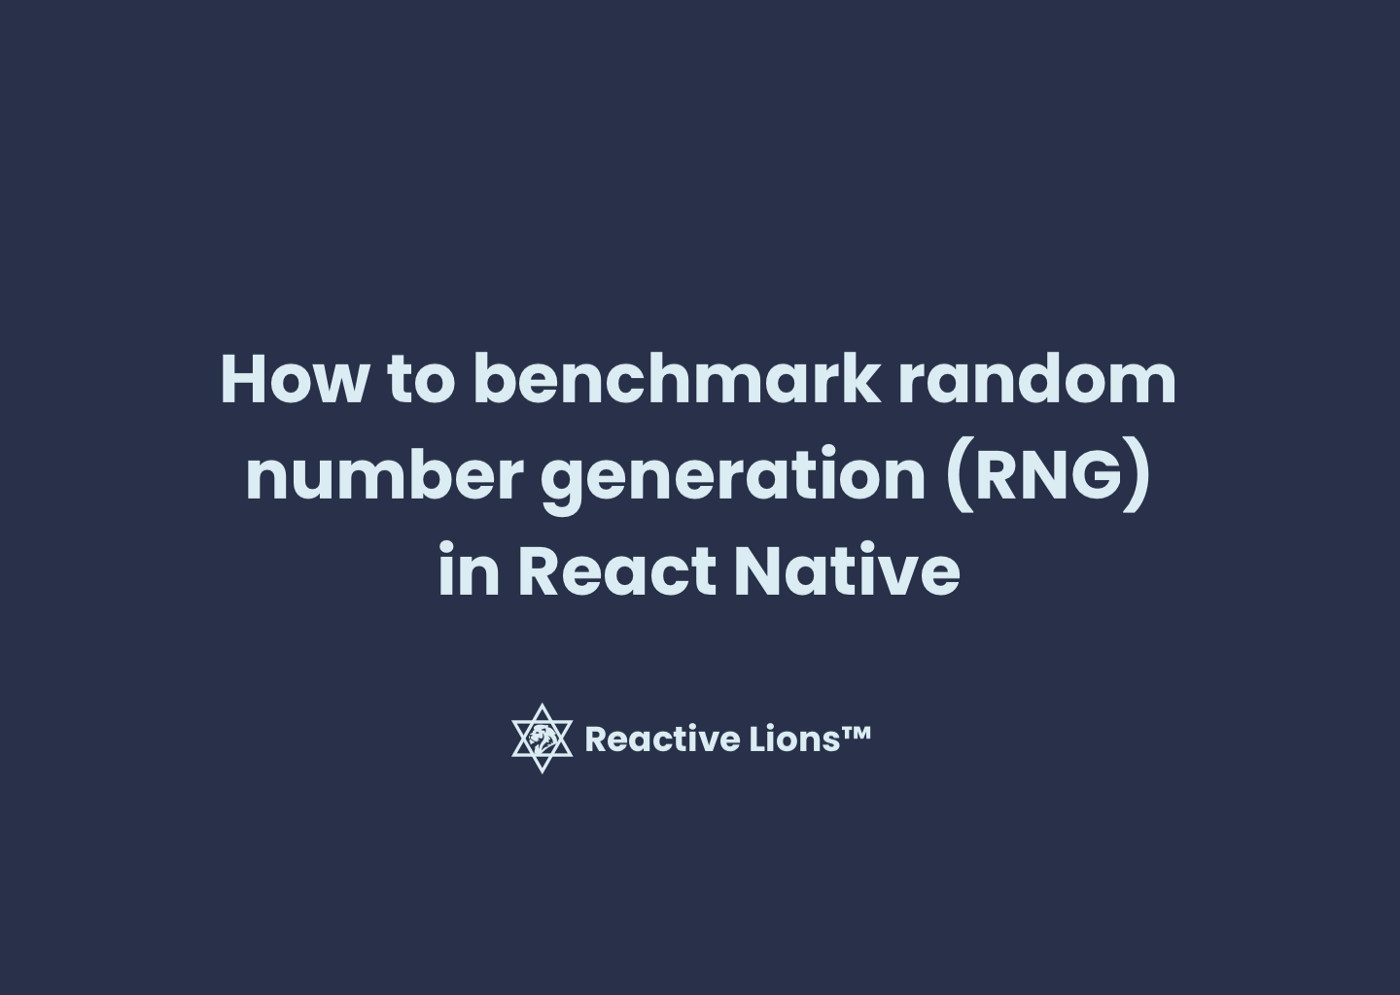 How to benchmark random number generation (RNG) in React Native